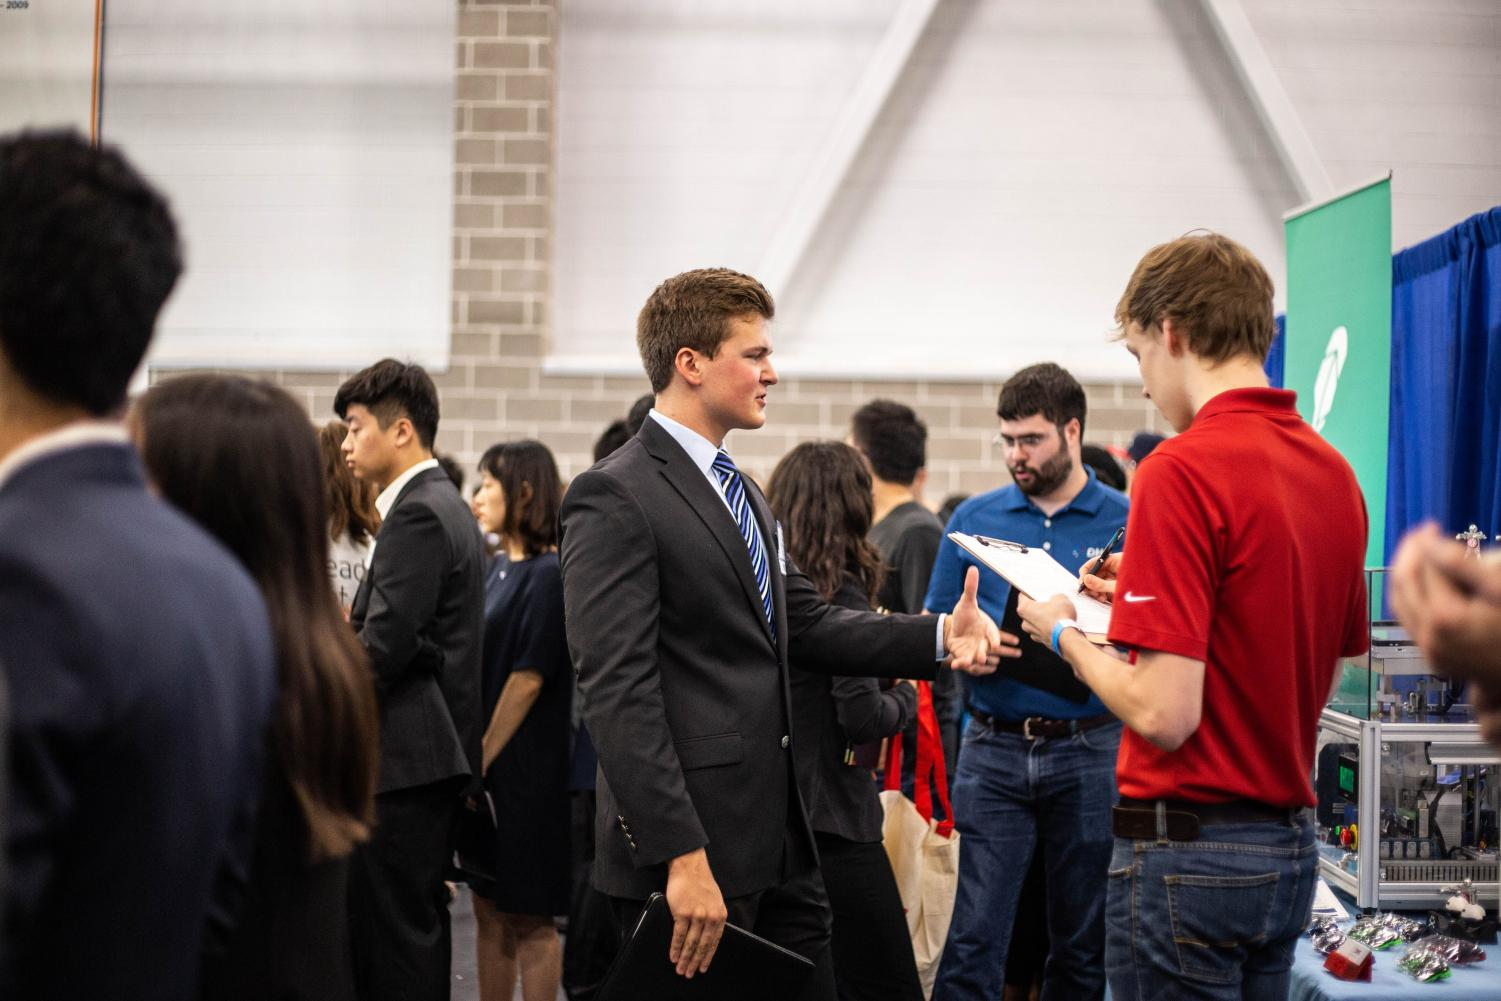 Engineering students talk to company representatives at the Engineering Career Fair at the Activities and Recreation Center on Sept. 11.